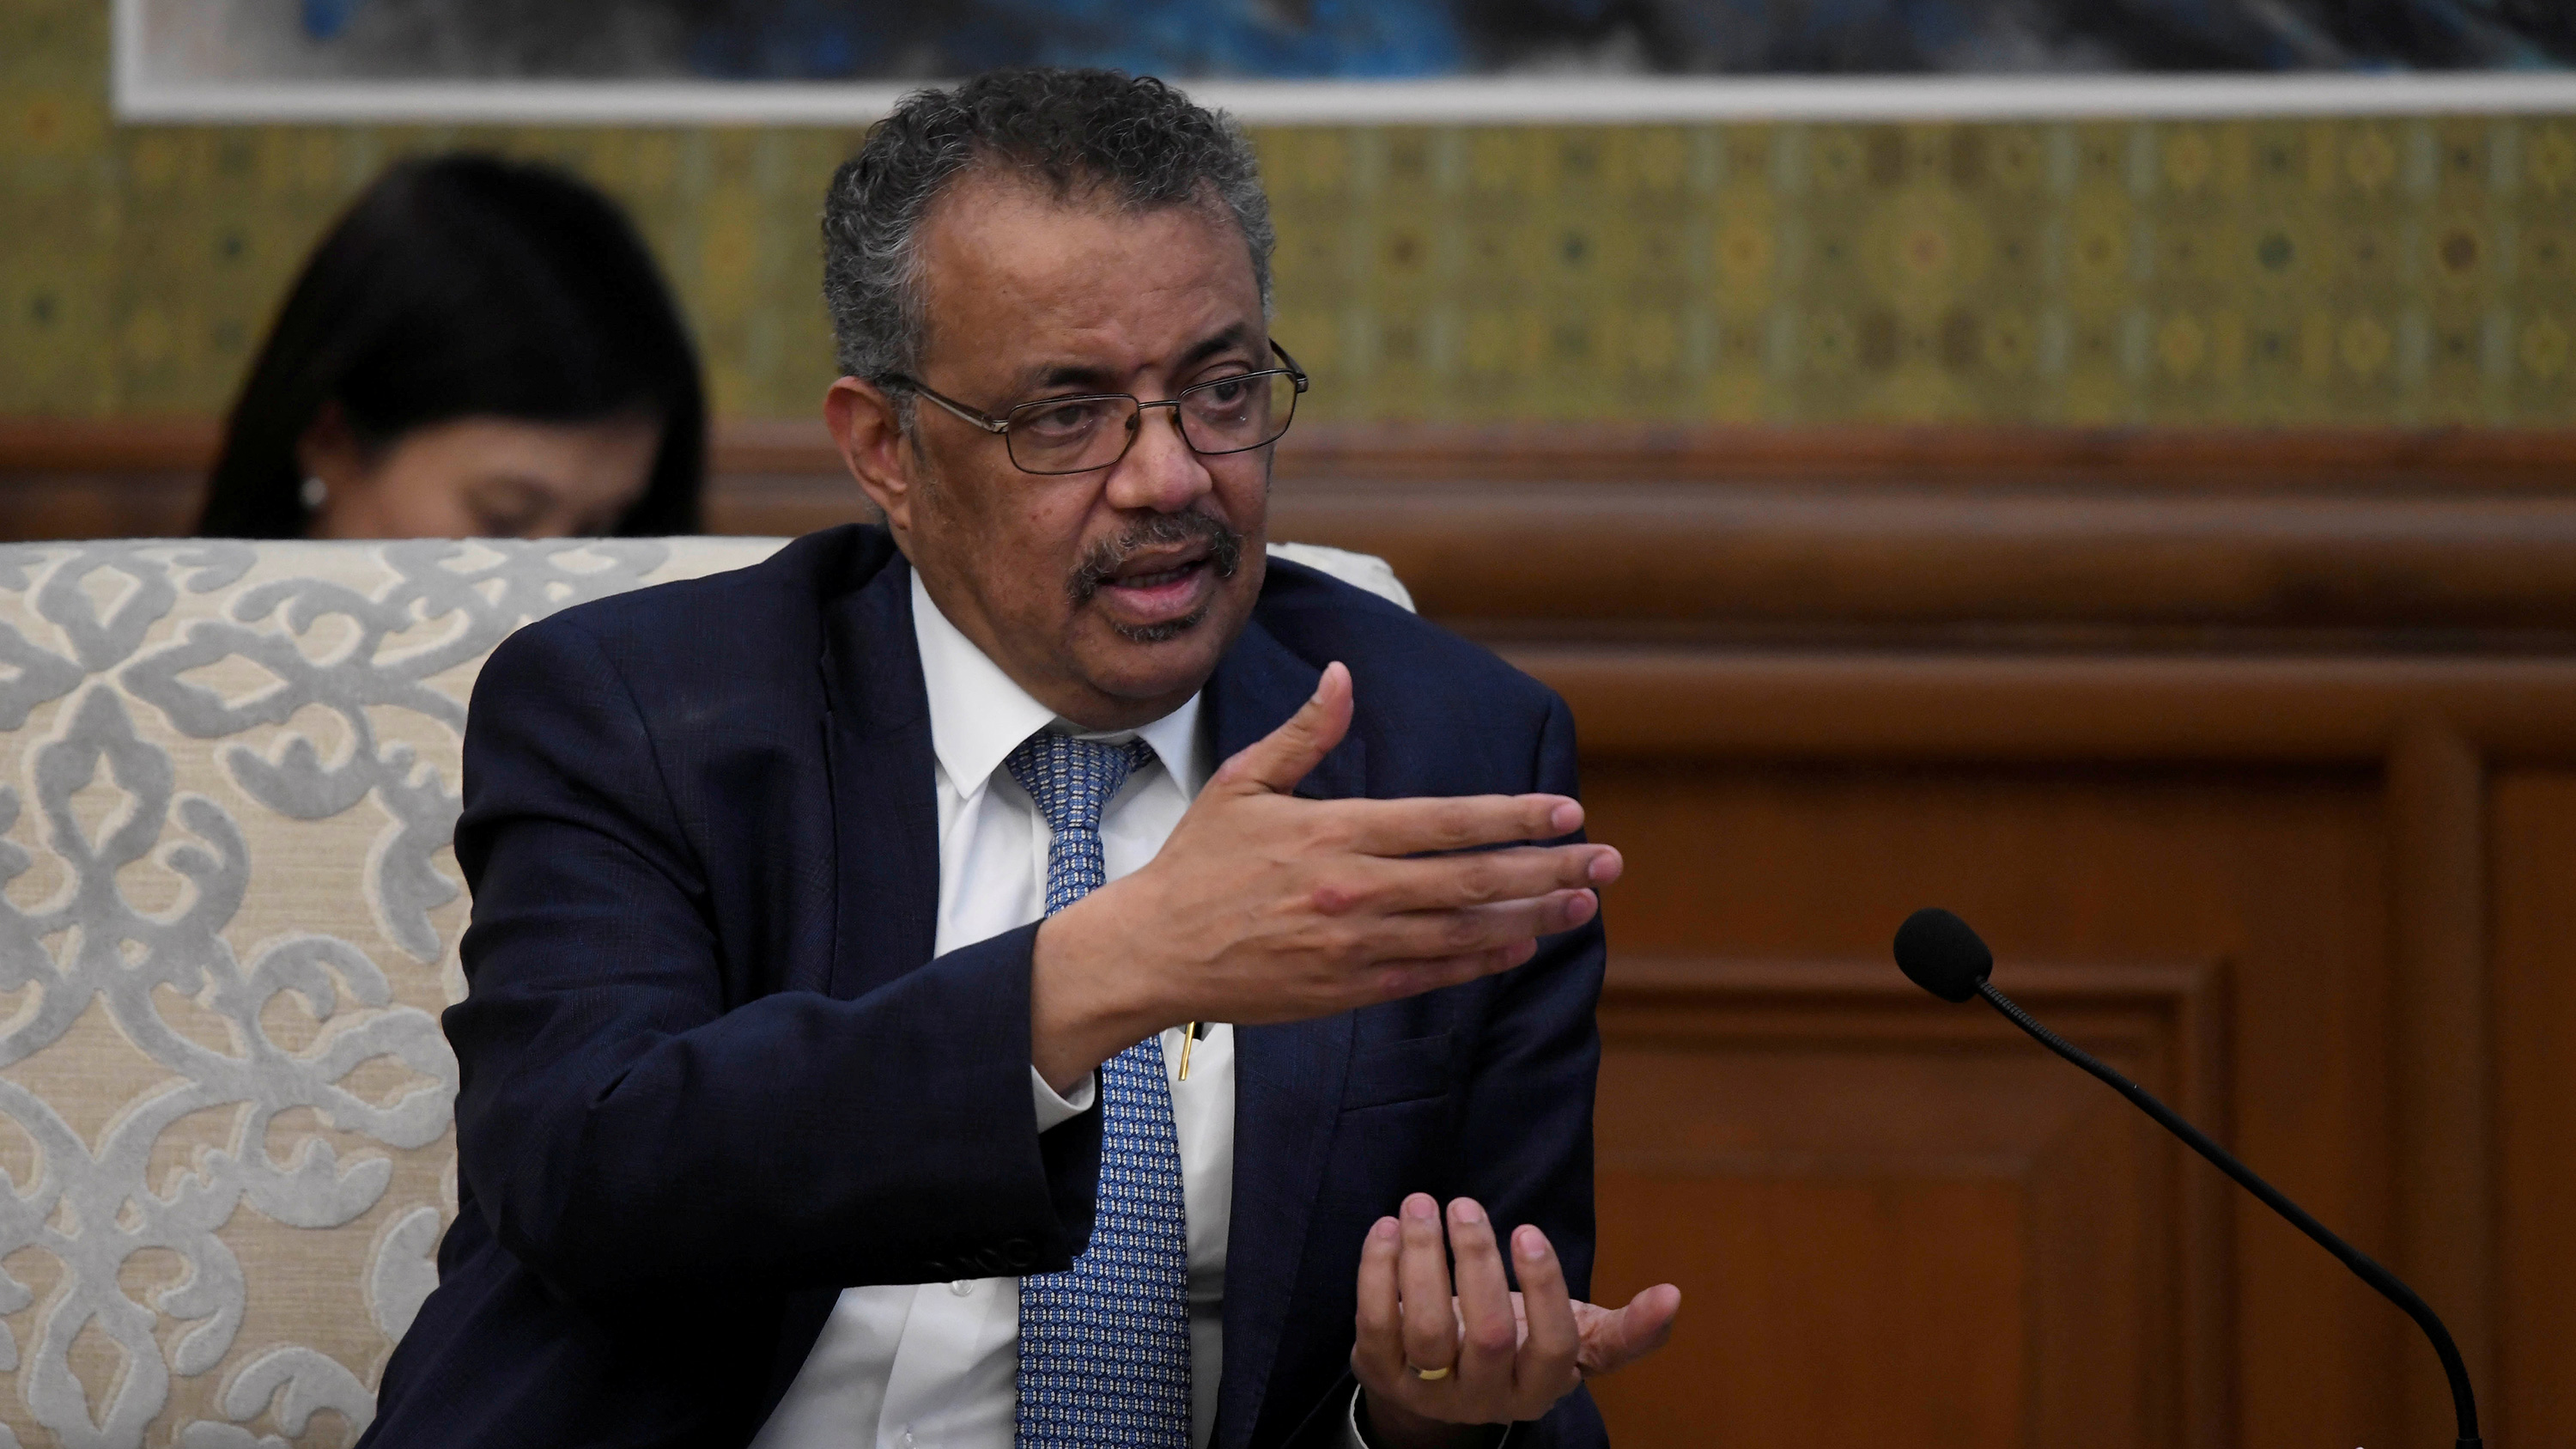 The photo shows Director-General Tedros talking and guesturing with his hands.